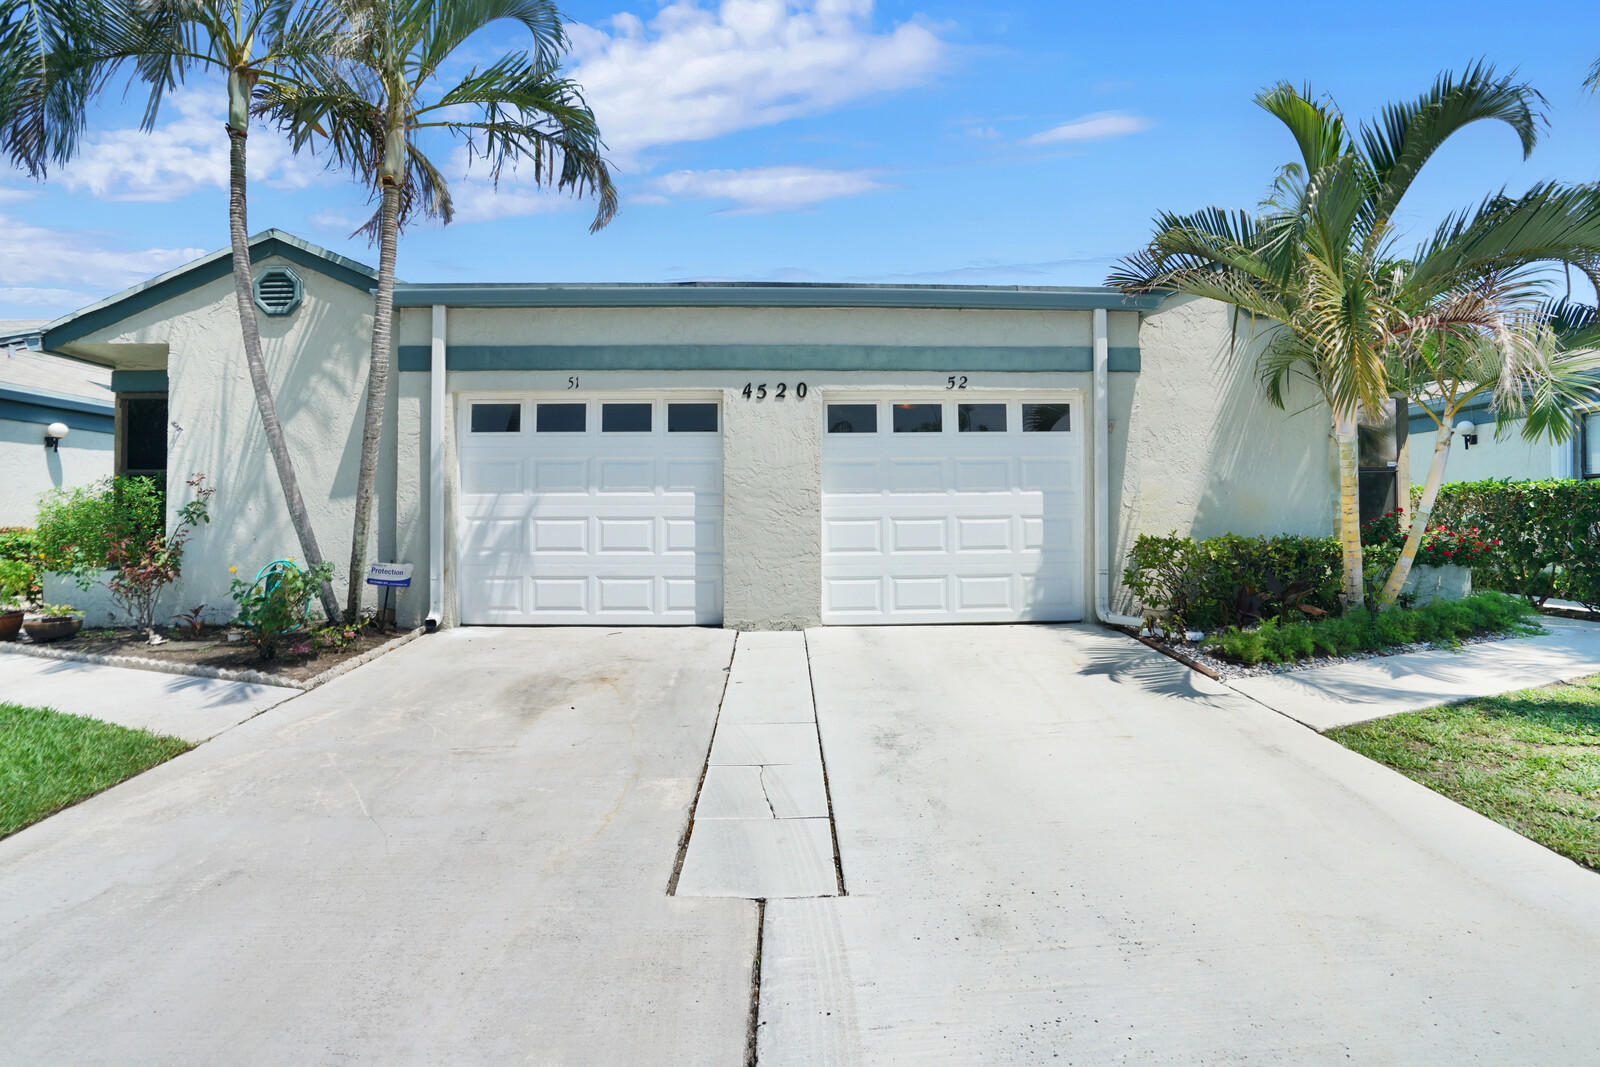 4520  Feivel Road 52 For Sale 10710698, FL